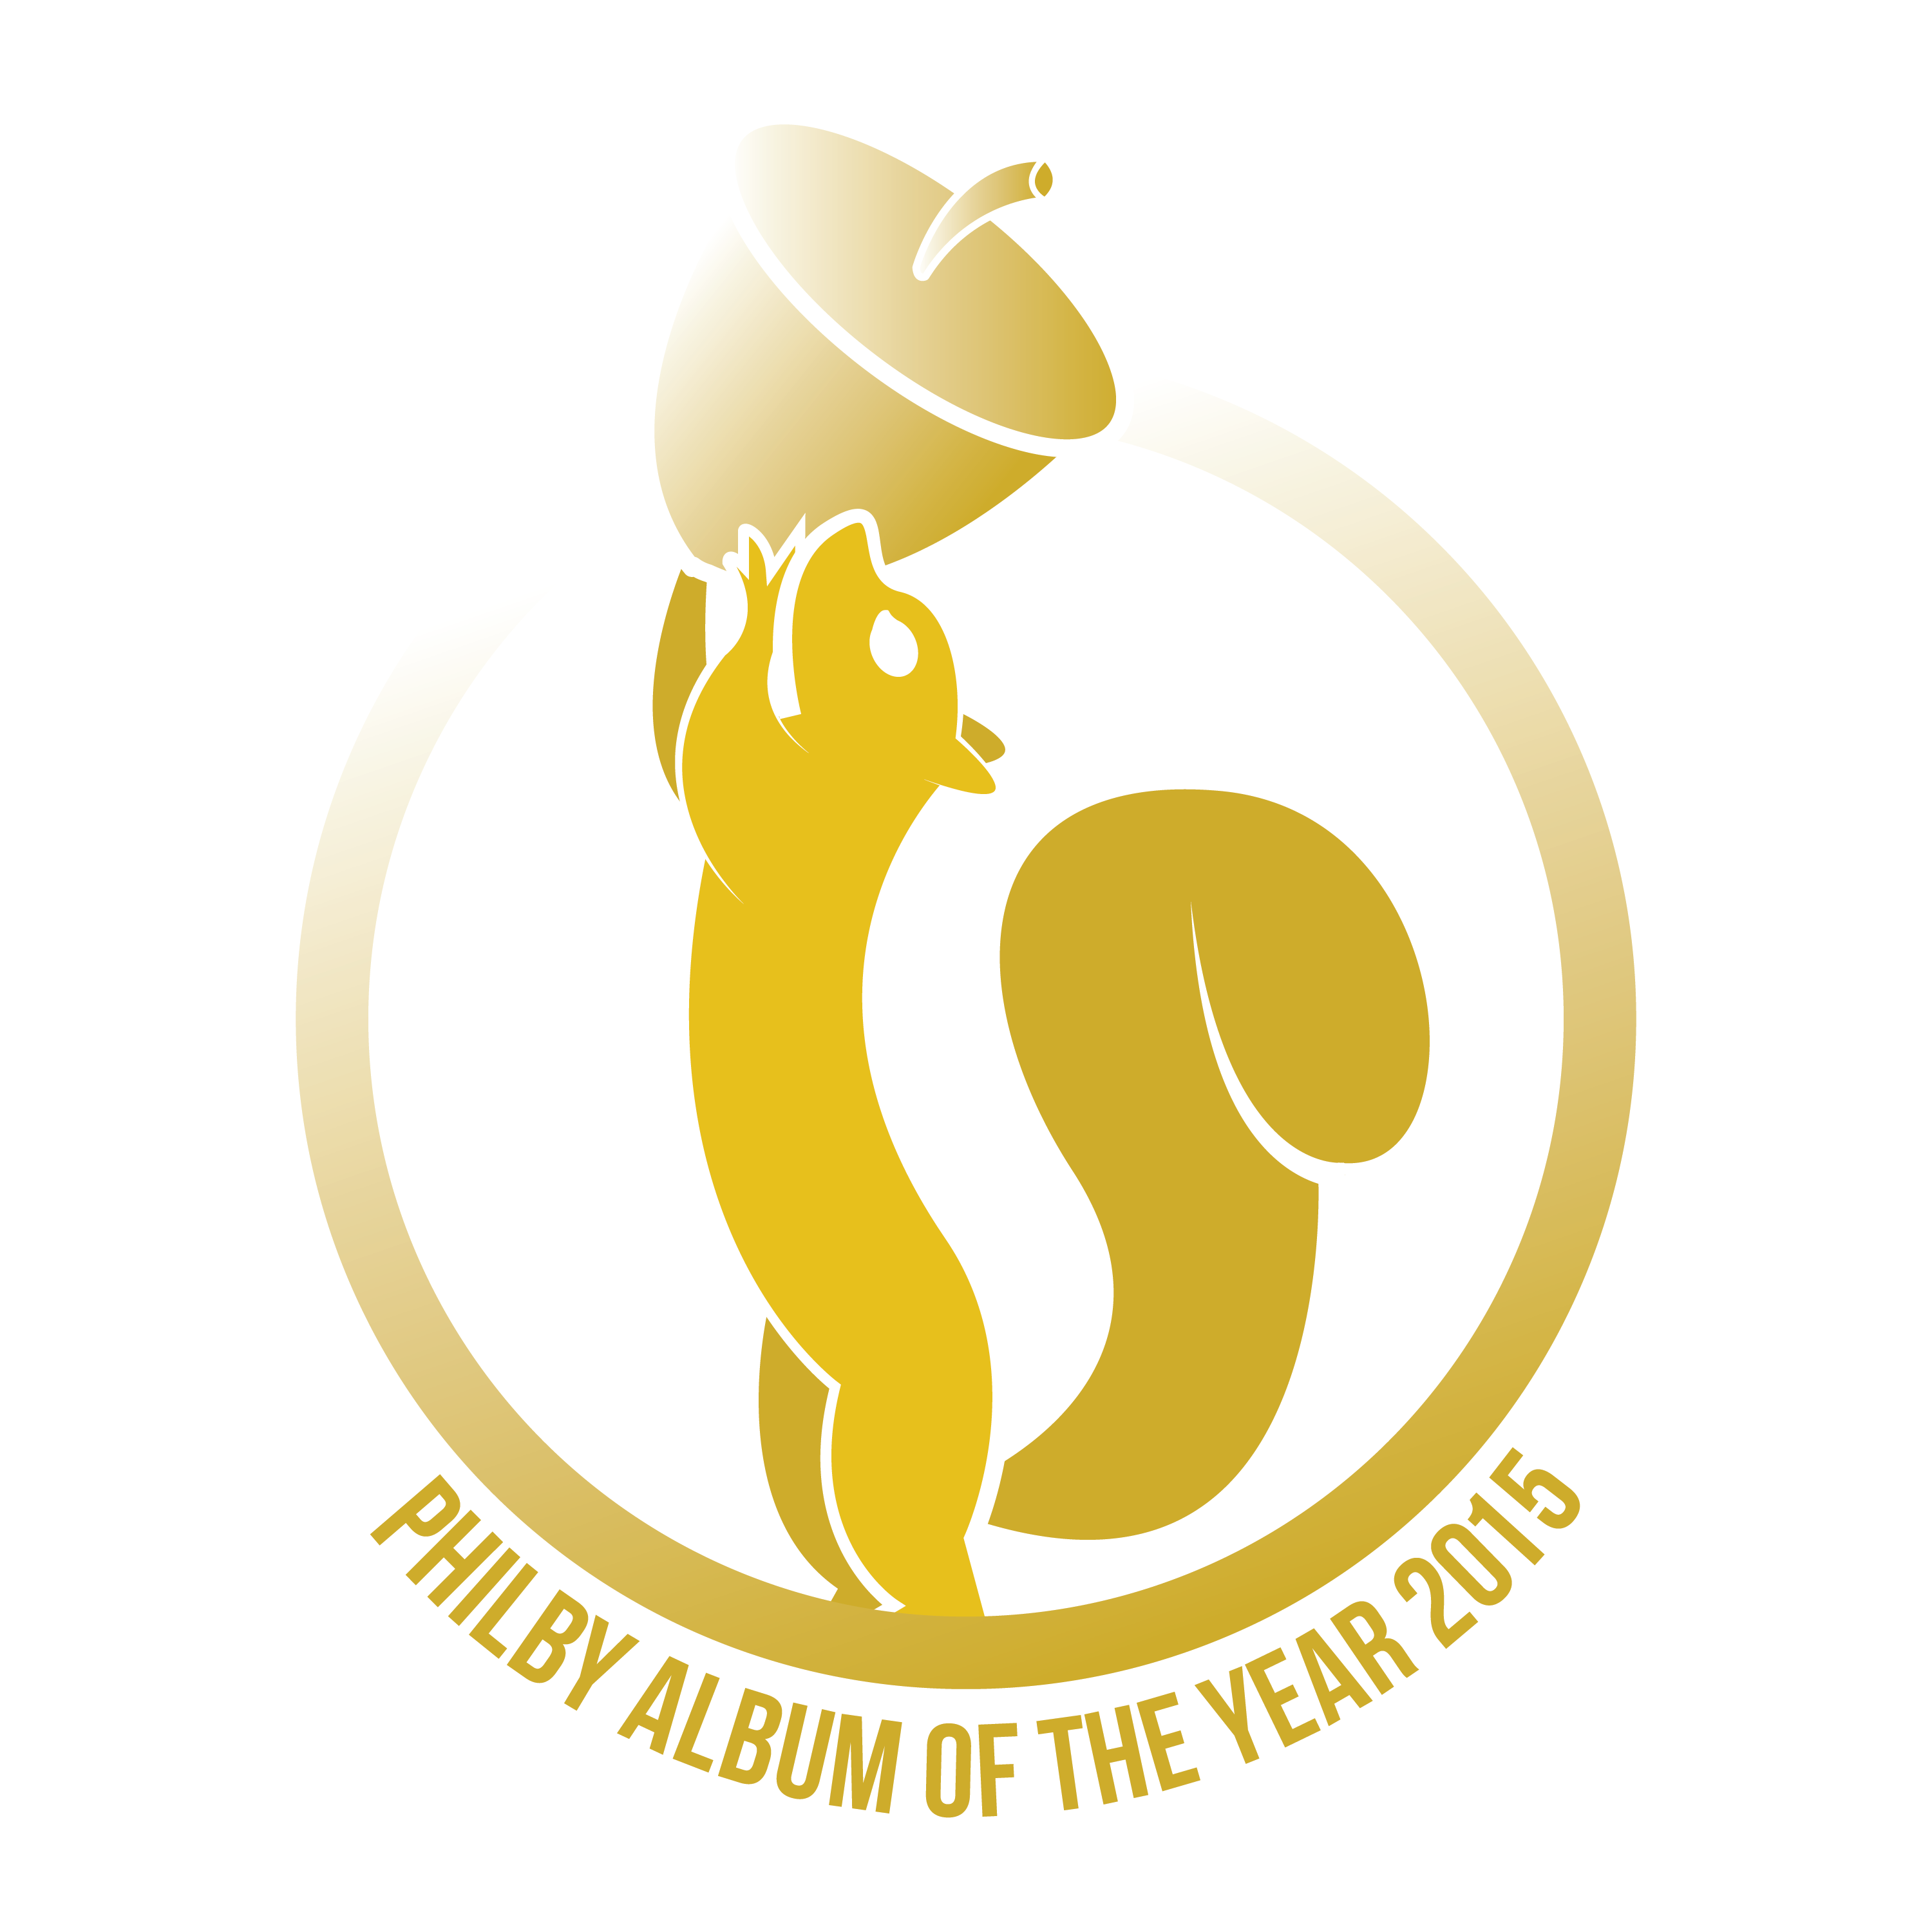 Philby Album of the Year 2015